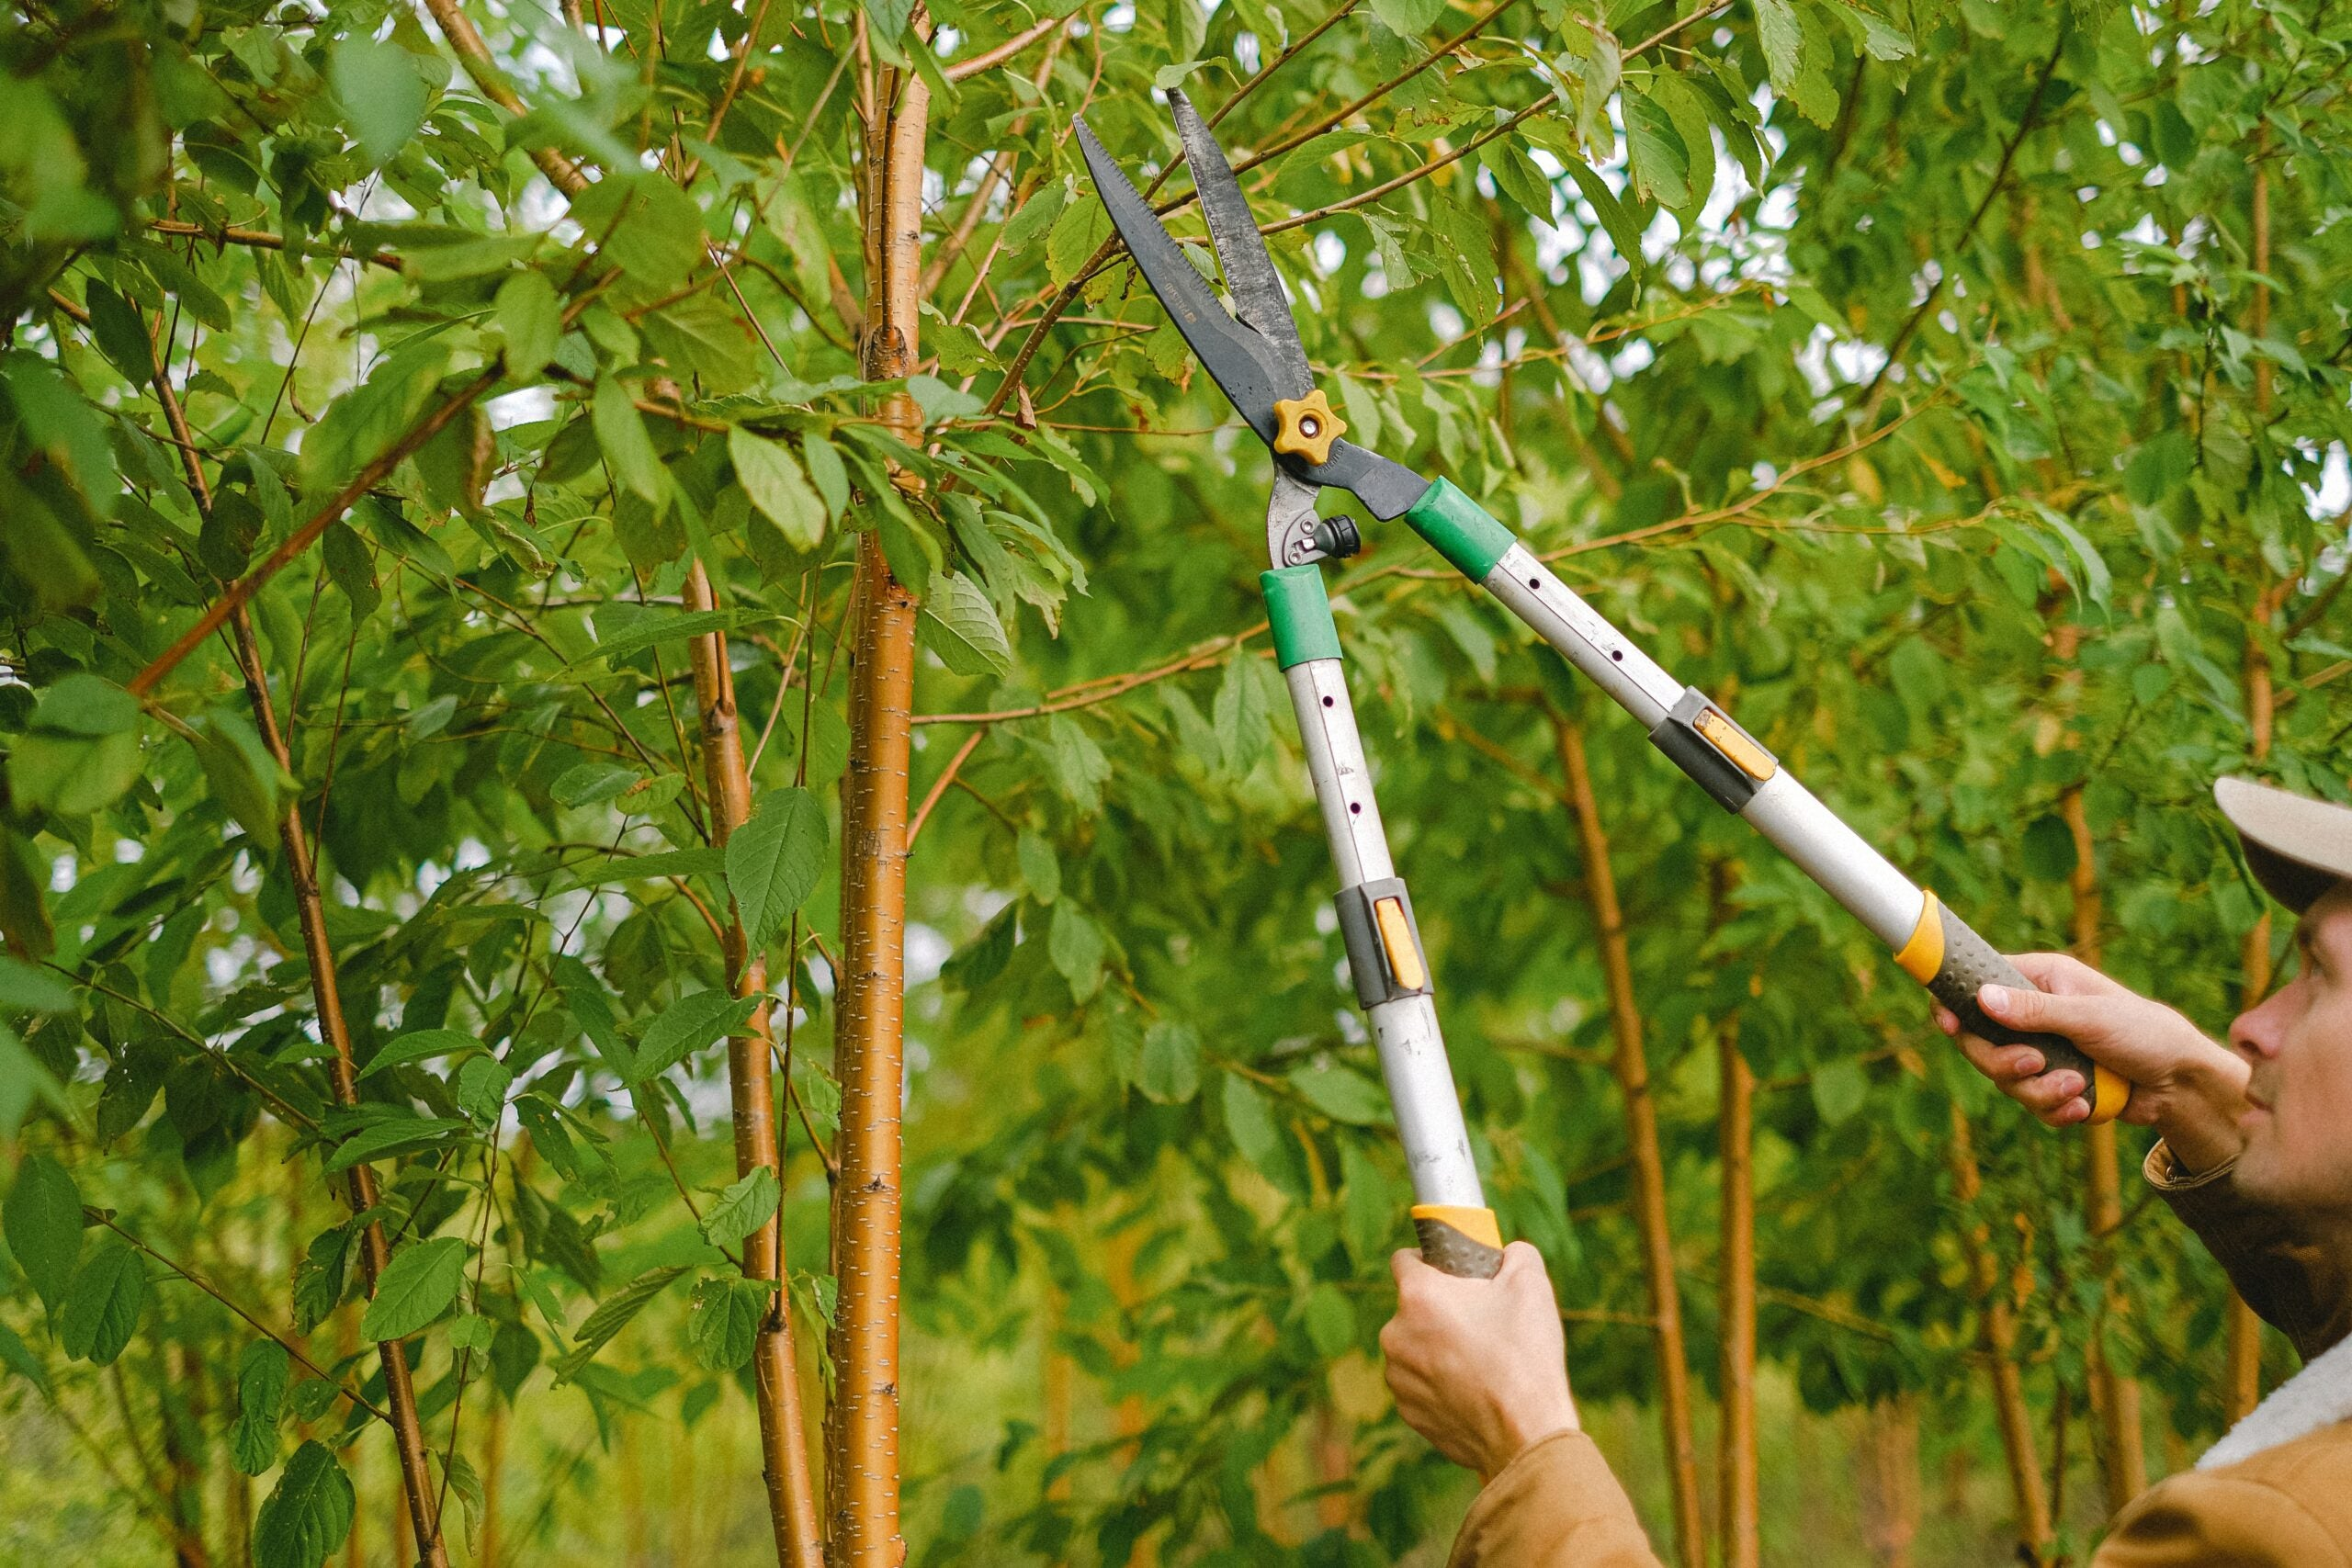 A person wearing a baseball cap and tan jacket holds a pair of green, silver, and yellow pruning shears up to a tree branch, read to cut.